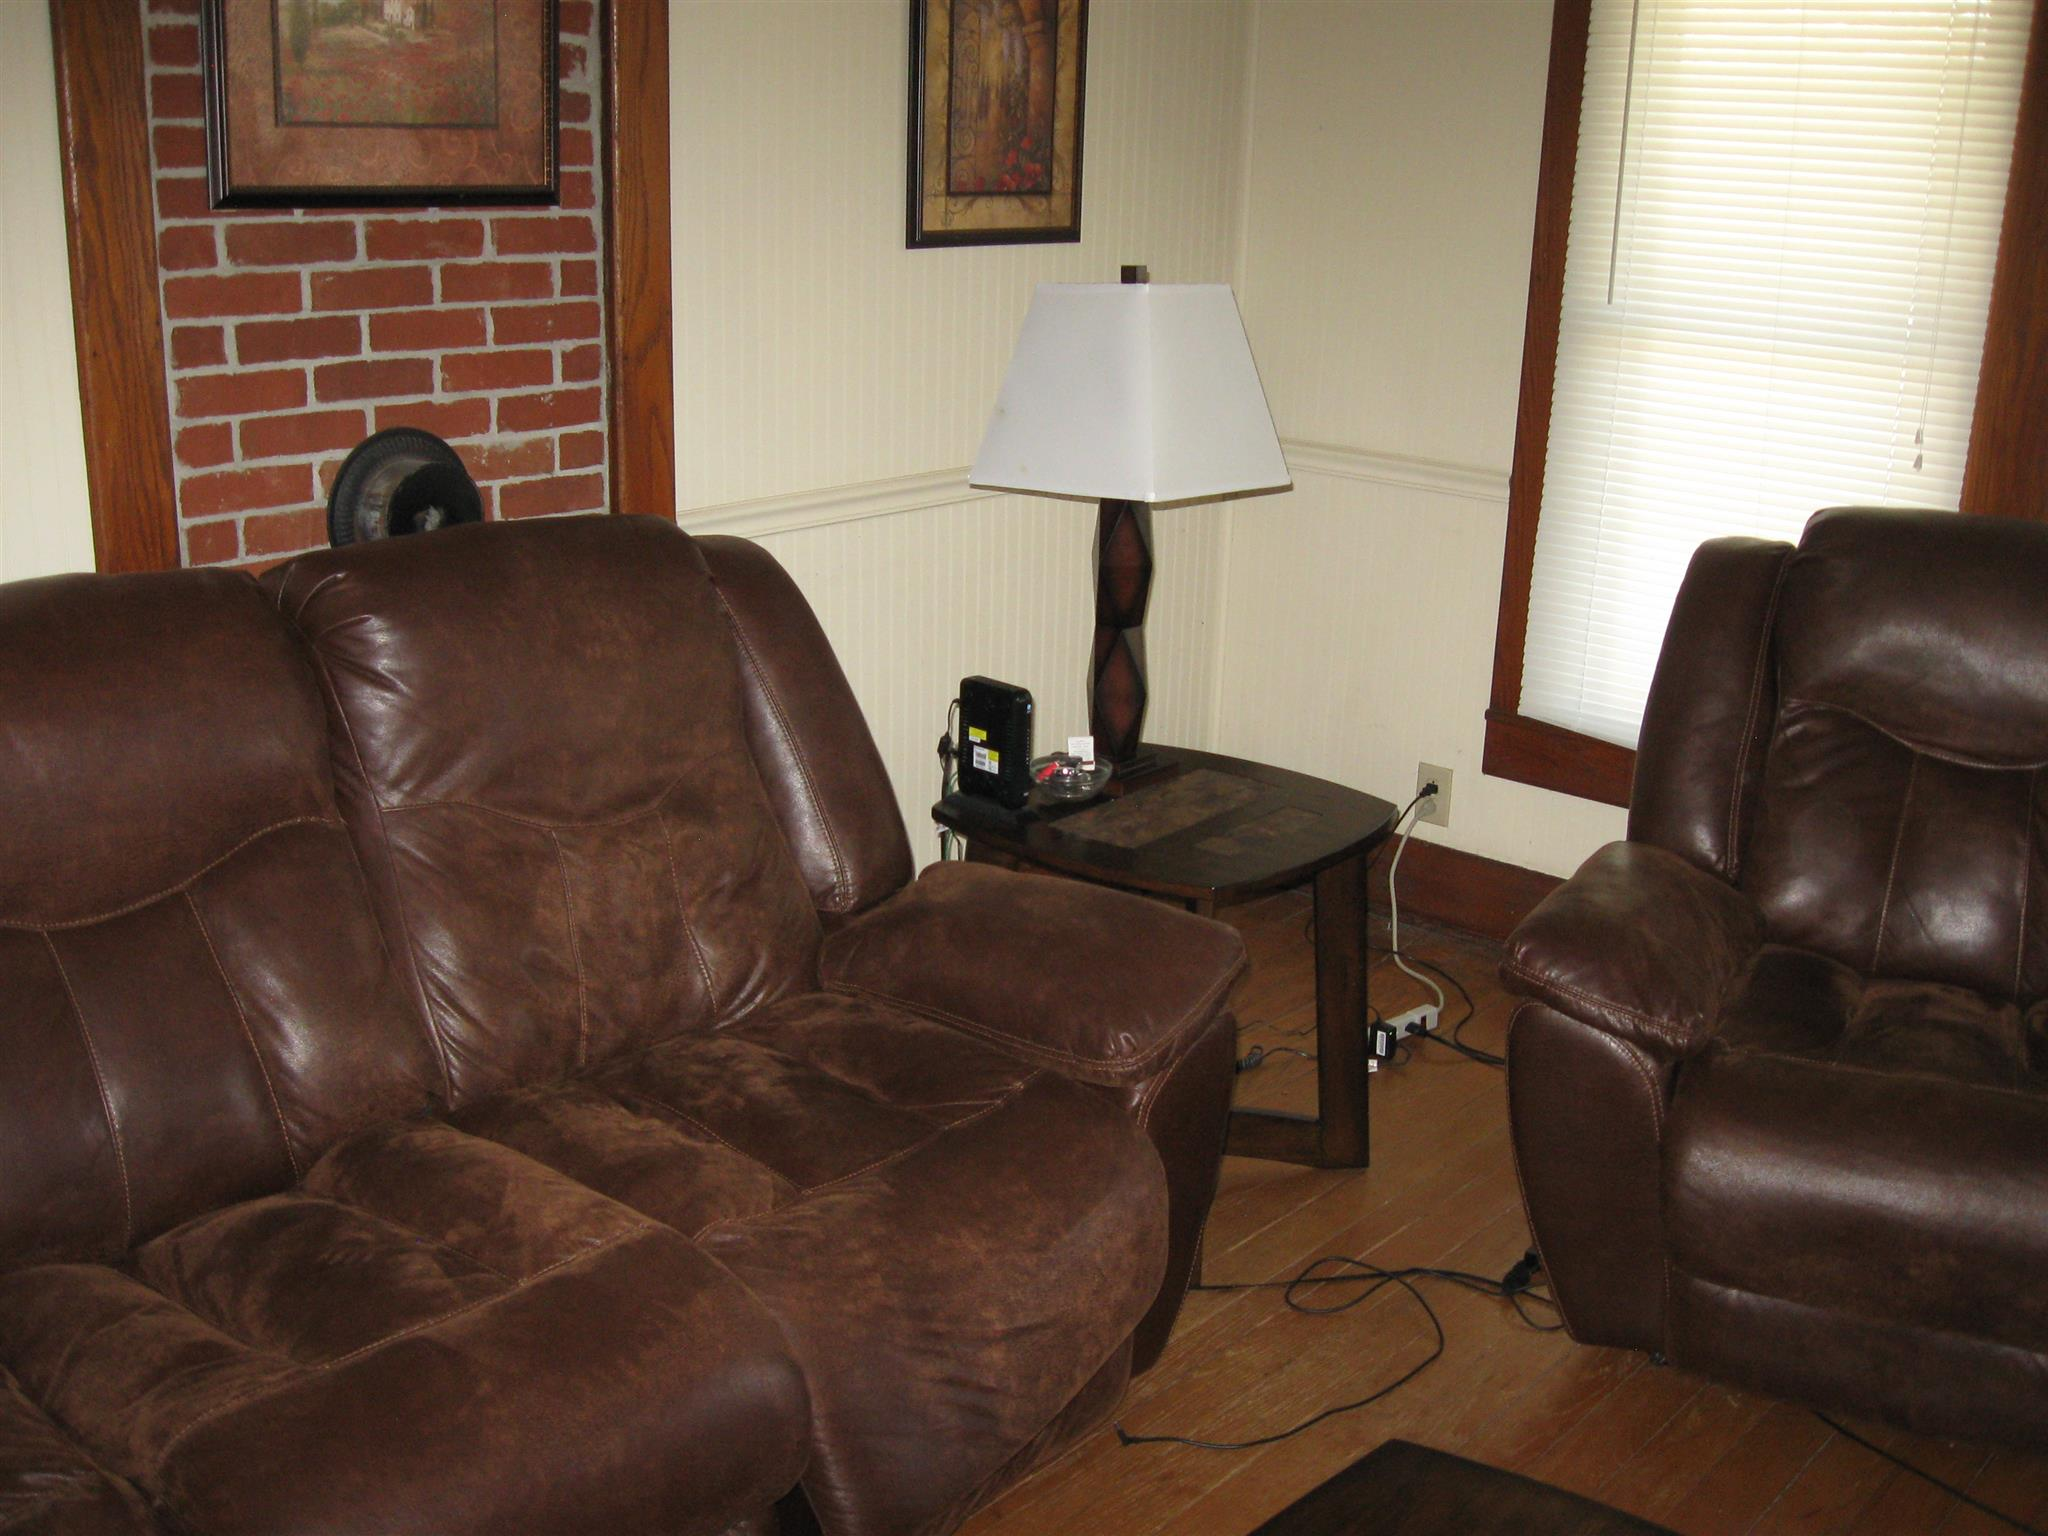 Listed By 4514 Highway 49 W Vanleer TN 37181 Crye Leike  Lease To Buy  Recliners. Lease Accent Chairs Nashville   cpgworkflow com